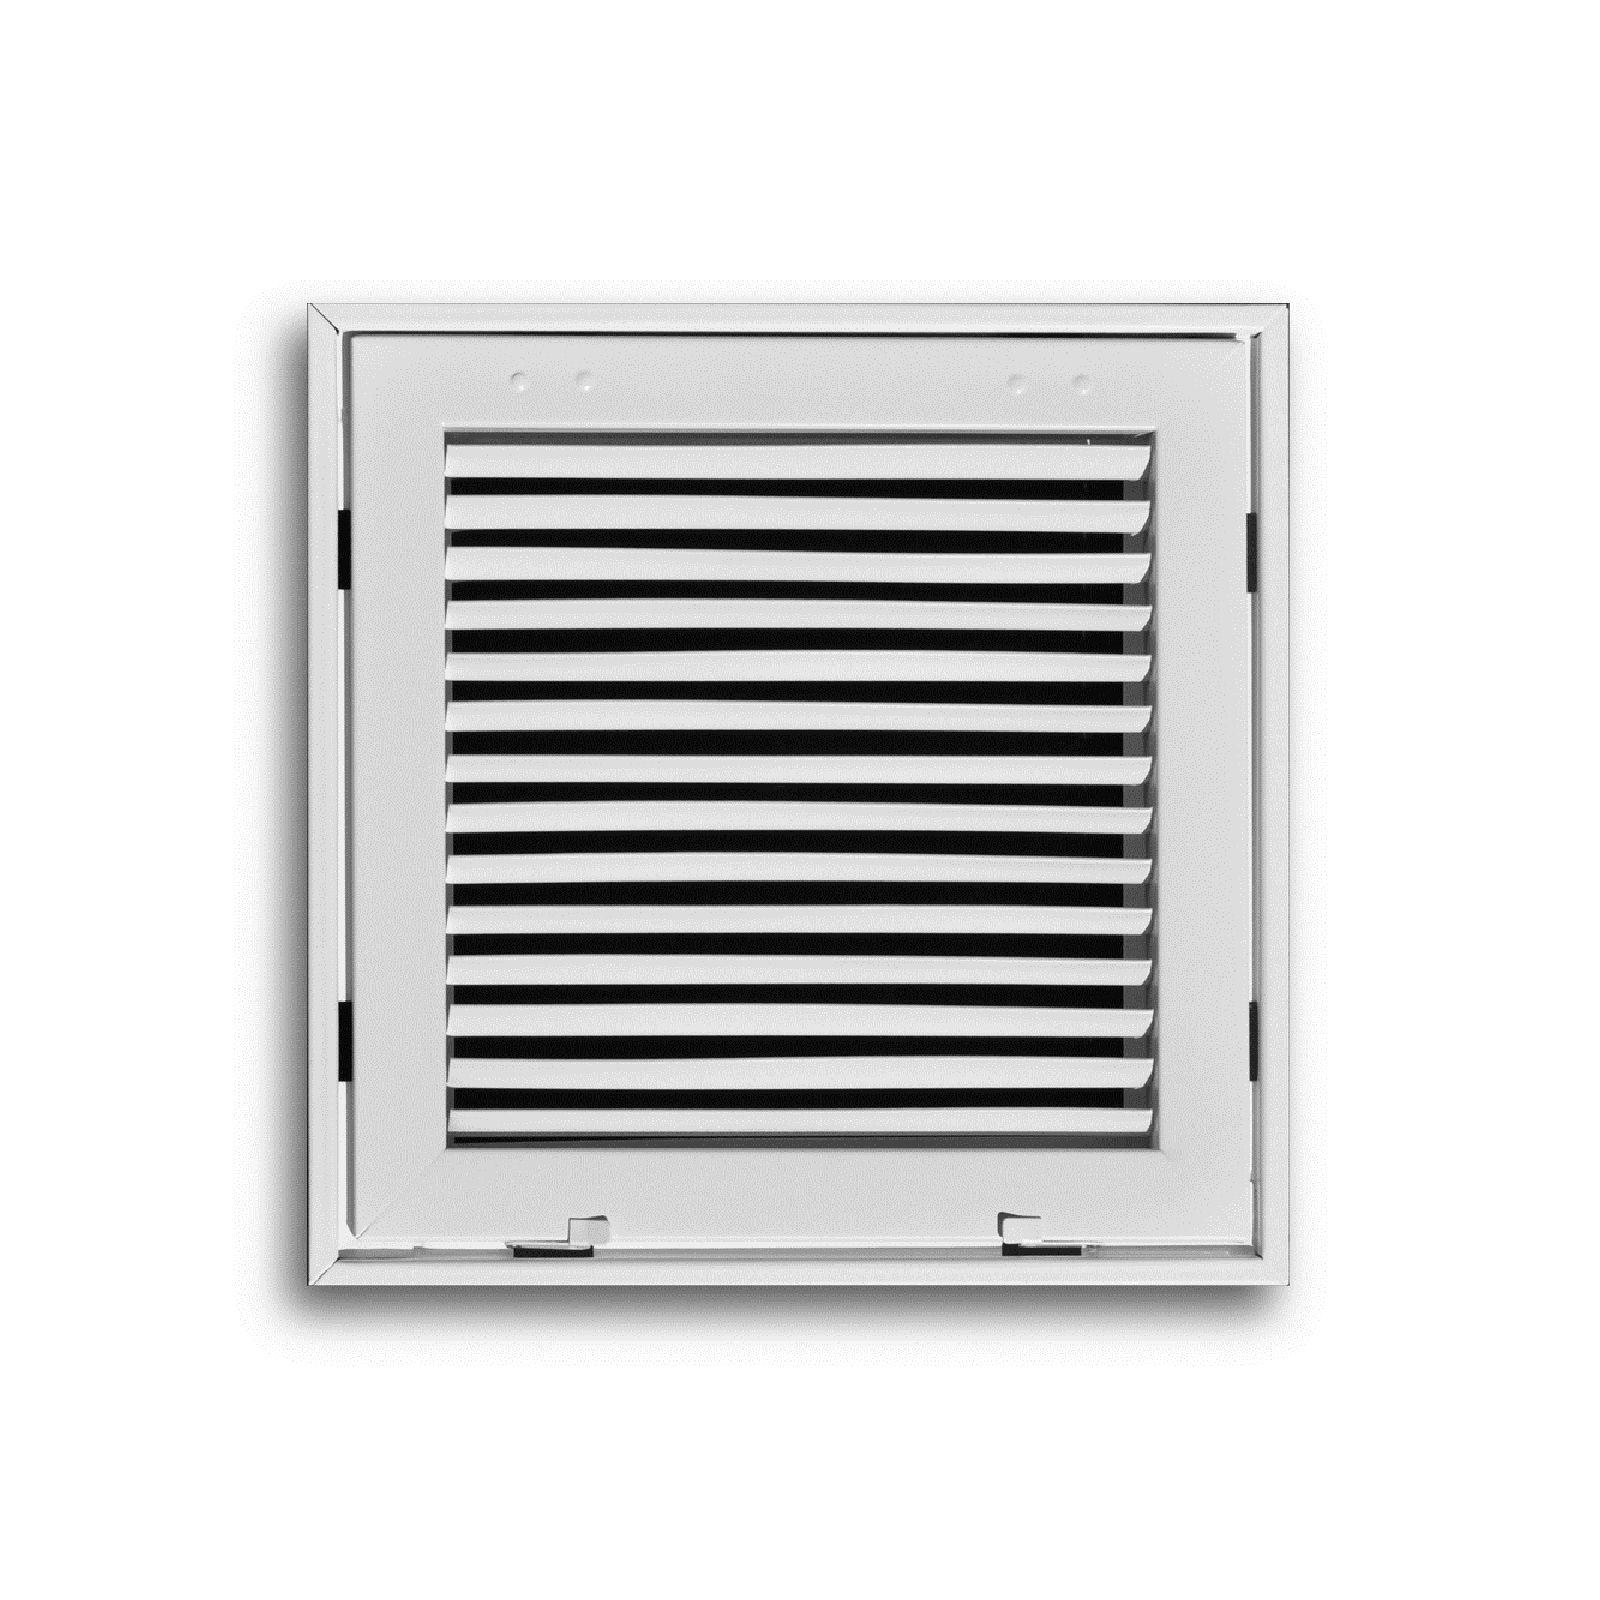 "TRUaire 290 50X20 - Steel Fixed Bar Return Air Filter Grille, White, 50"" X 20"""